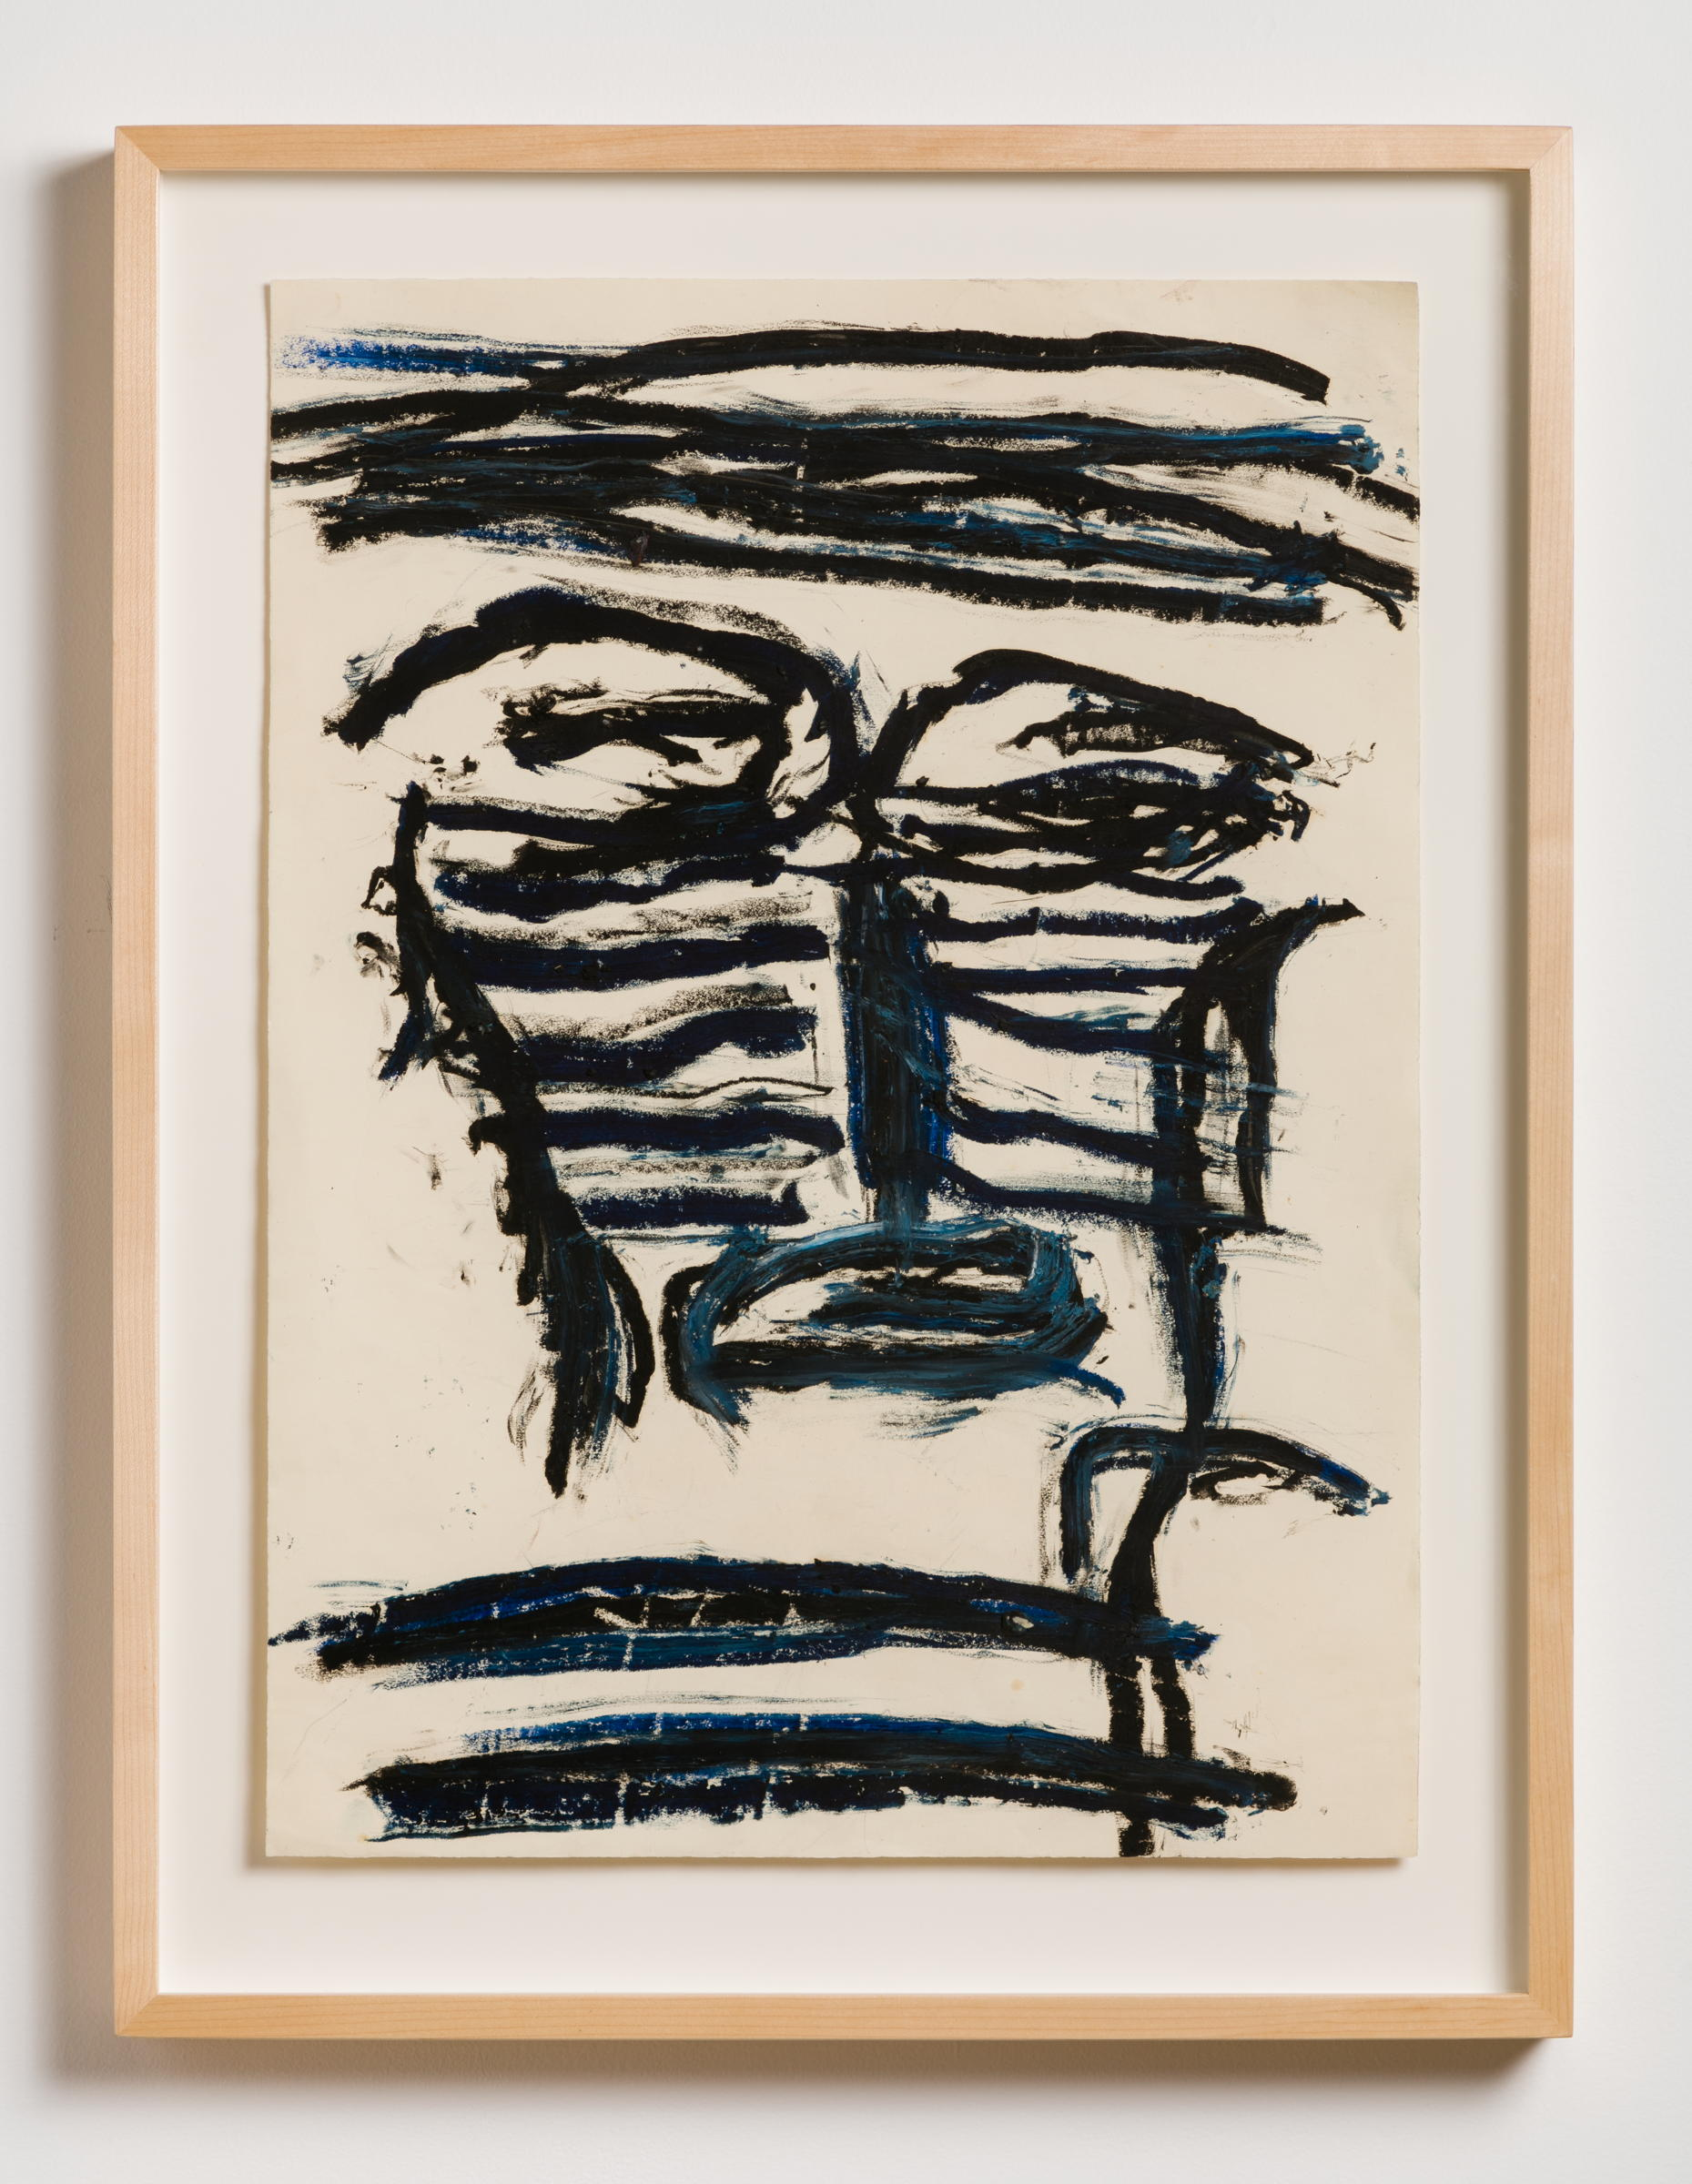 Dan Asher,  Untitled , 1980s, oil stick on paper, 26 × 19 in., 31 ½ × 24 in. (framed)